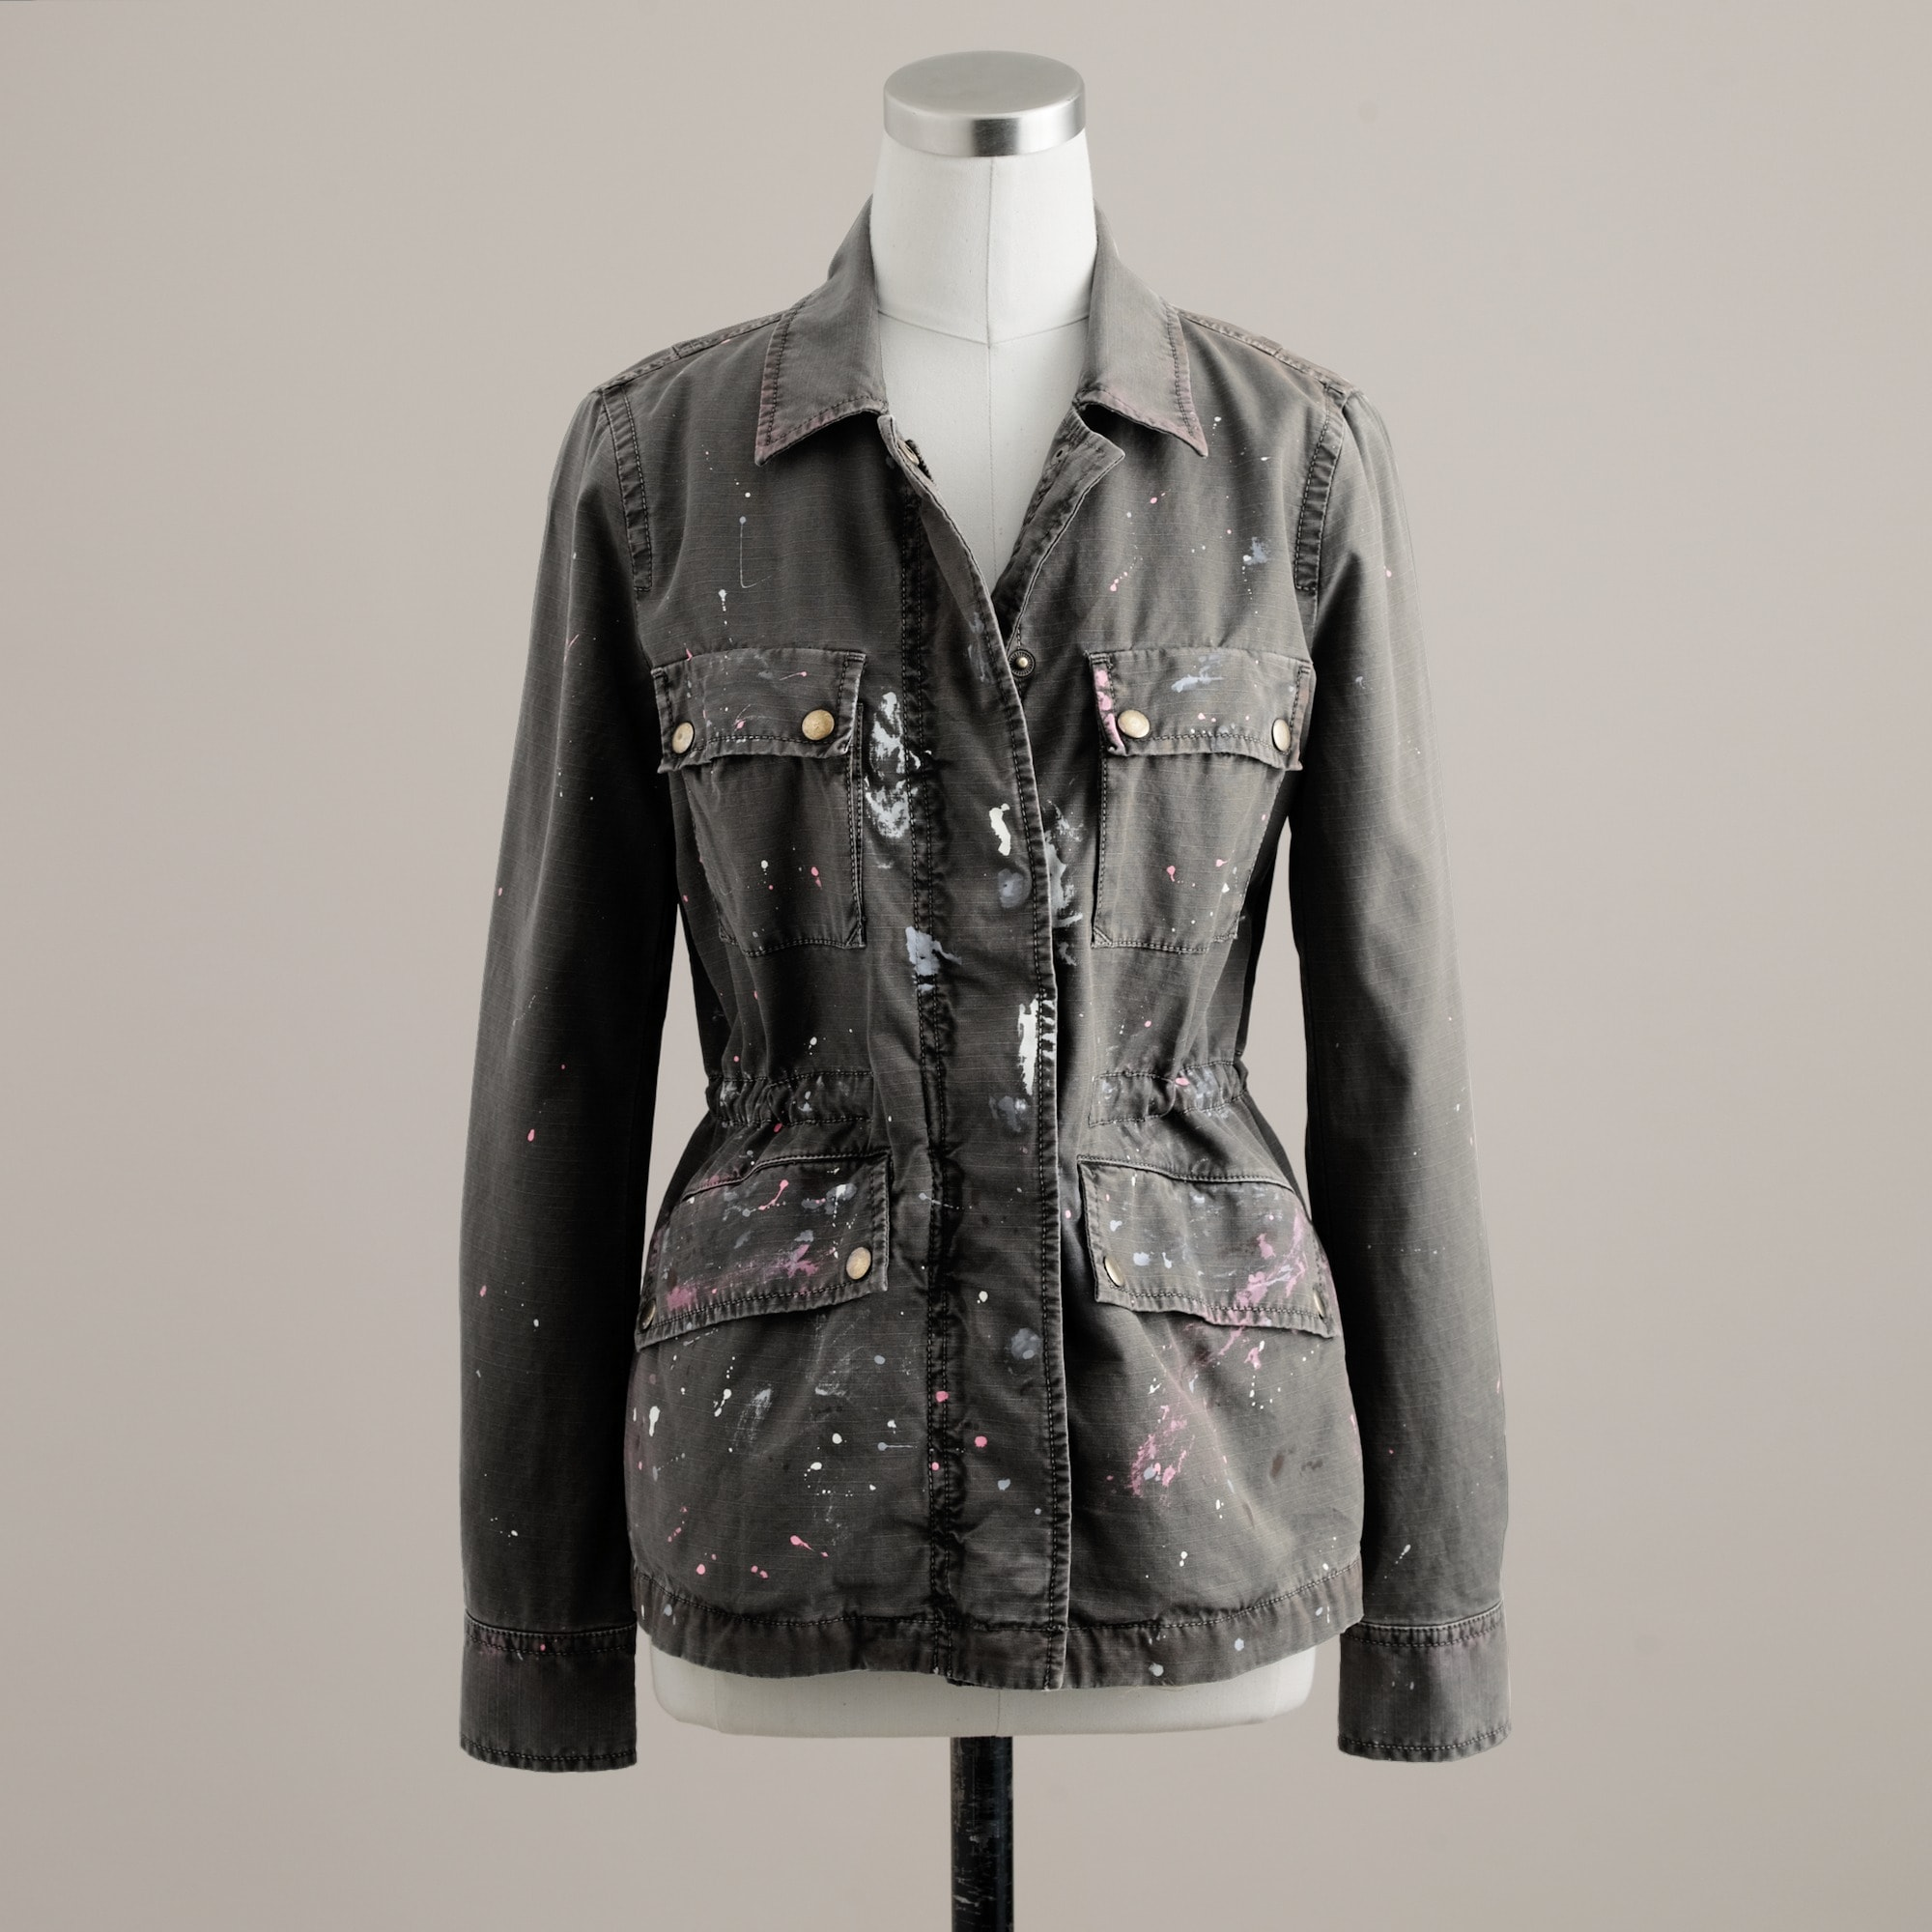 Hand-painted military jacket